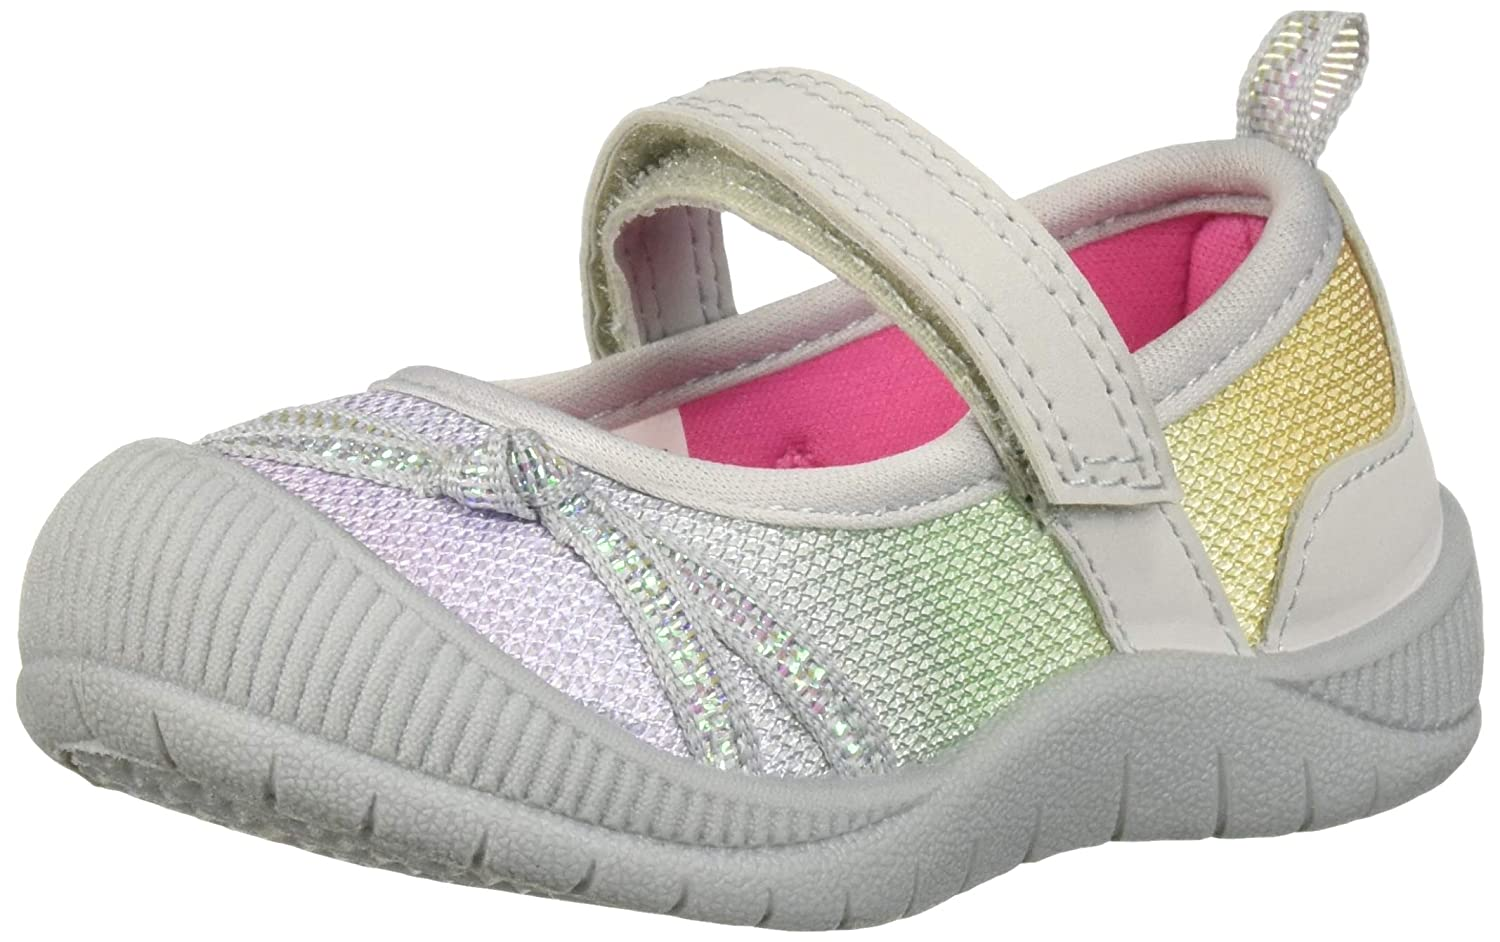 OshKosh BGosh Kids Blyss Girls Athletics Sneaker